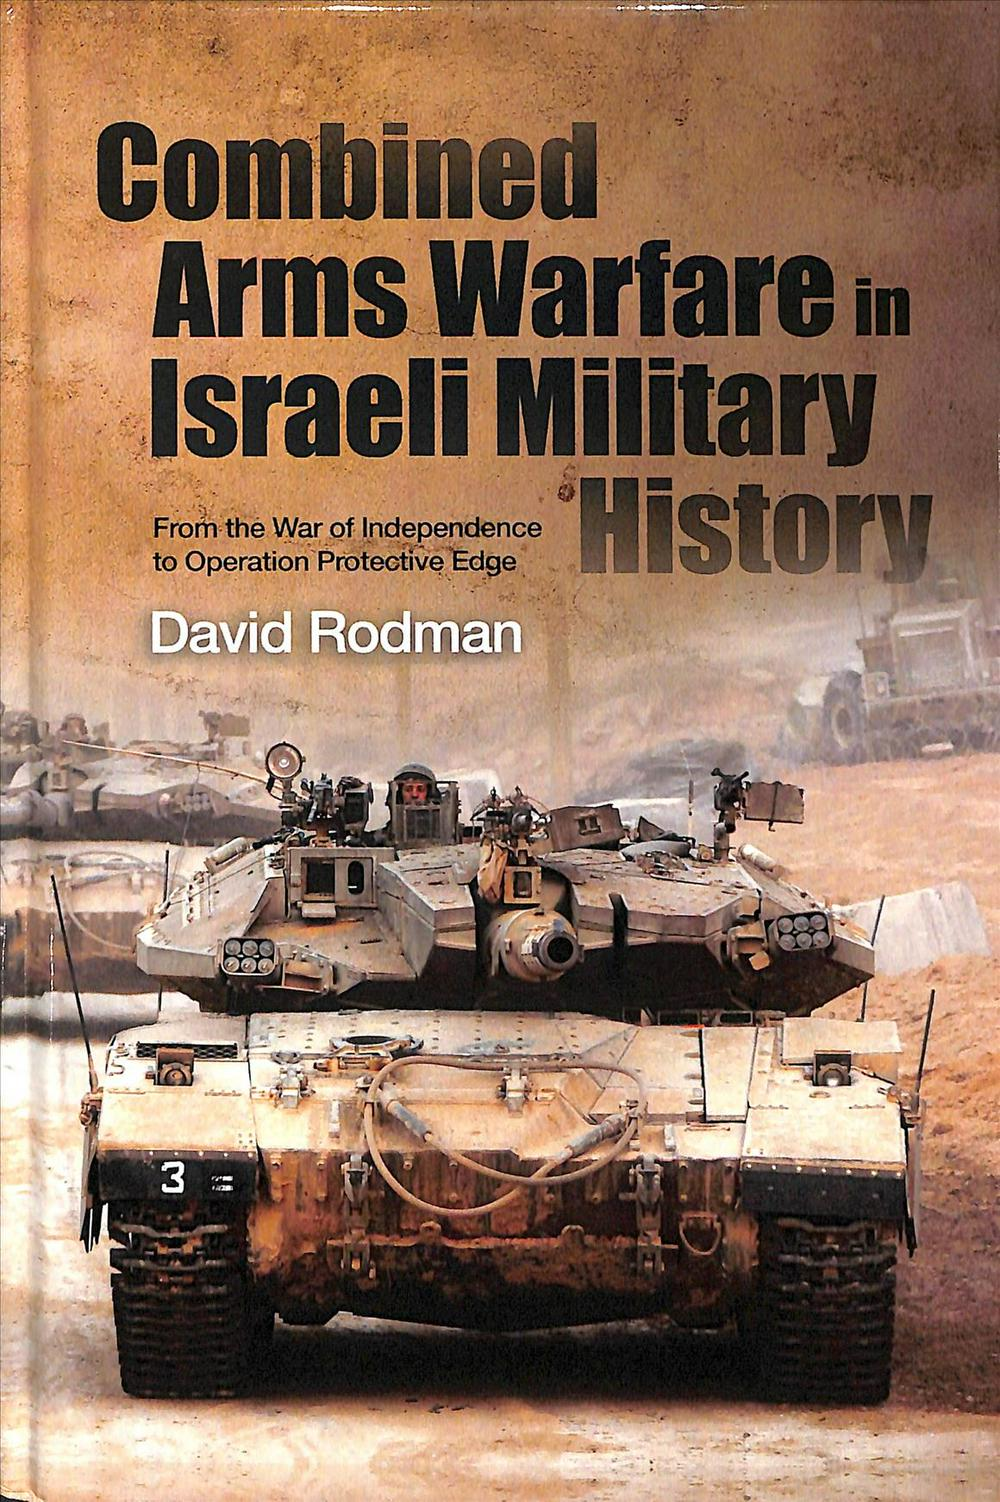 Combined Arms Warfare in Israeli Military History: From the War of Independence to Operation Protective Edge